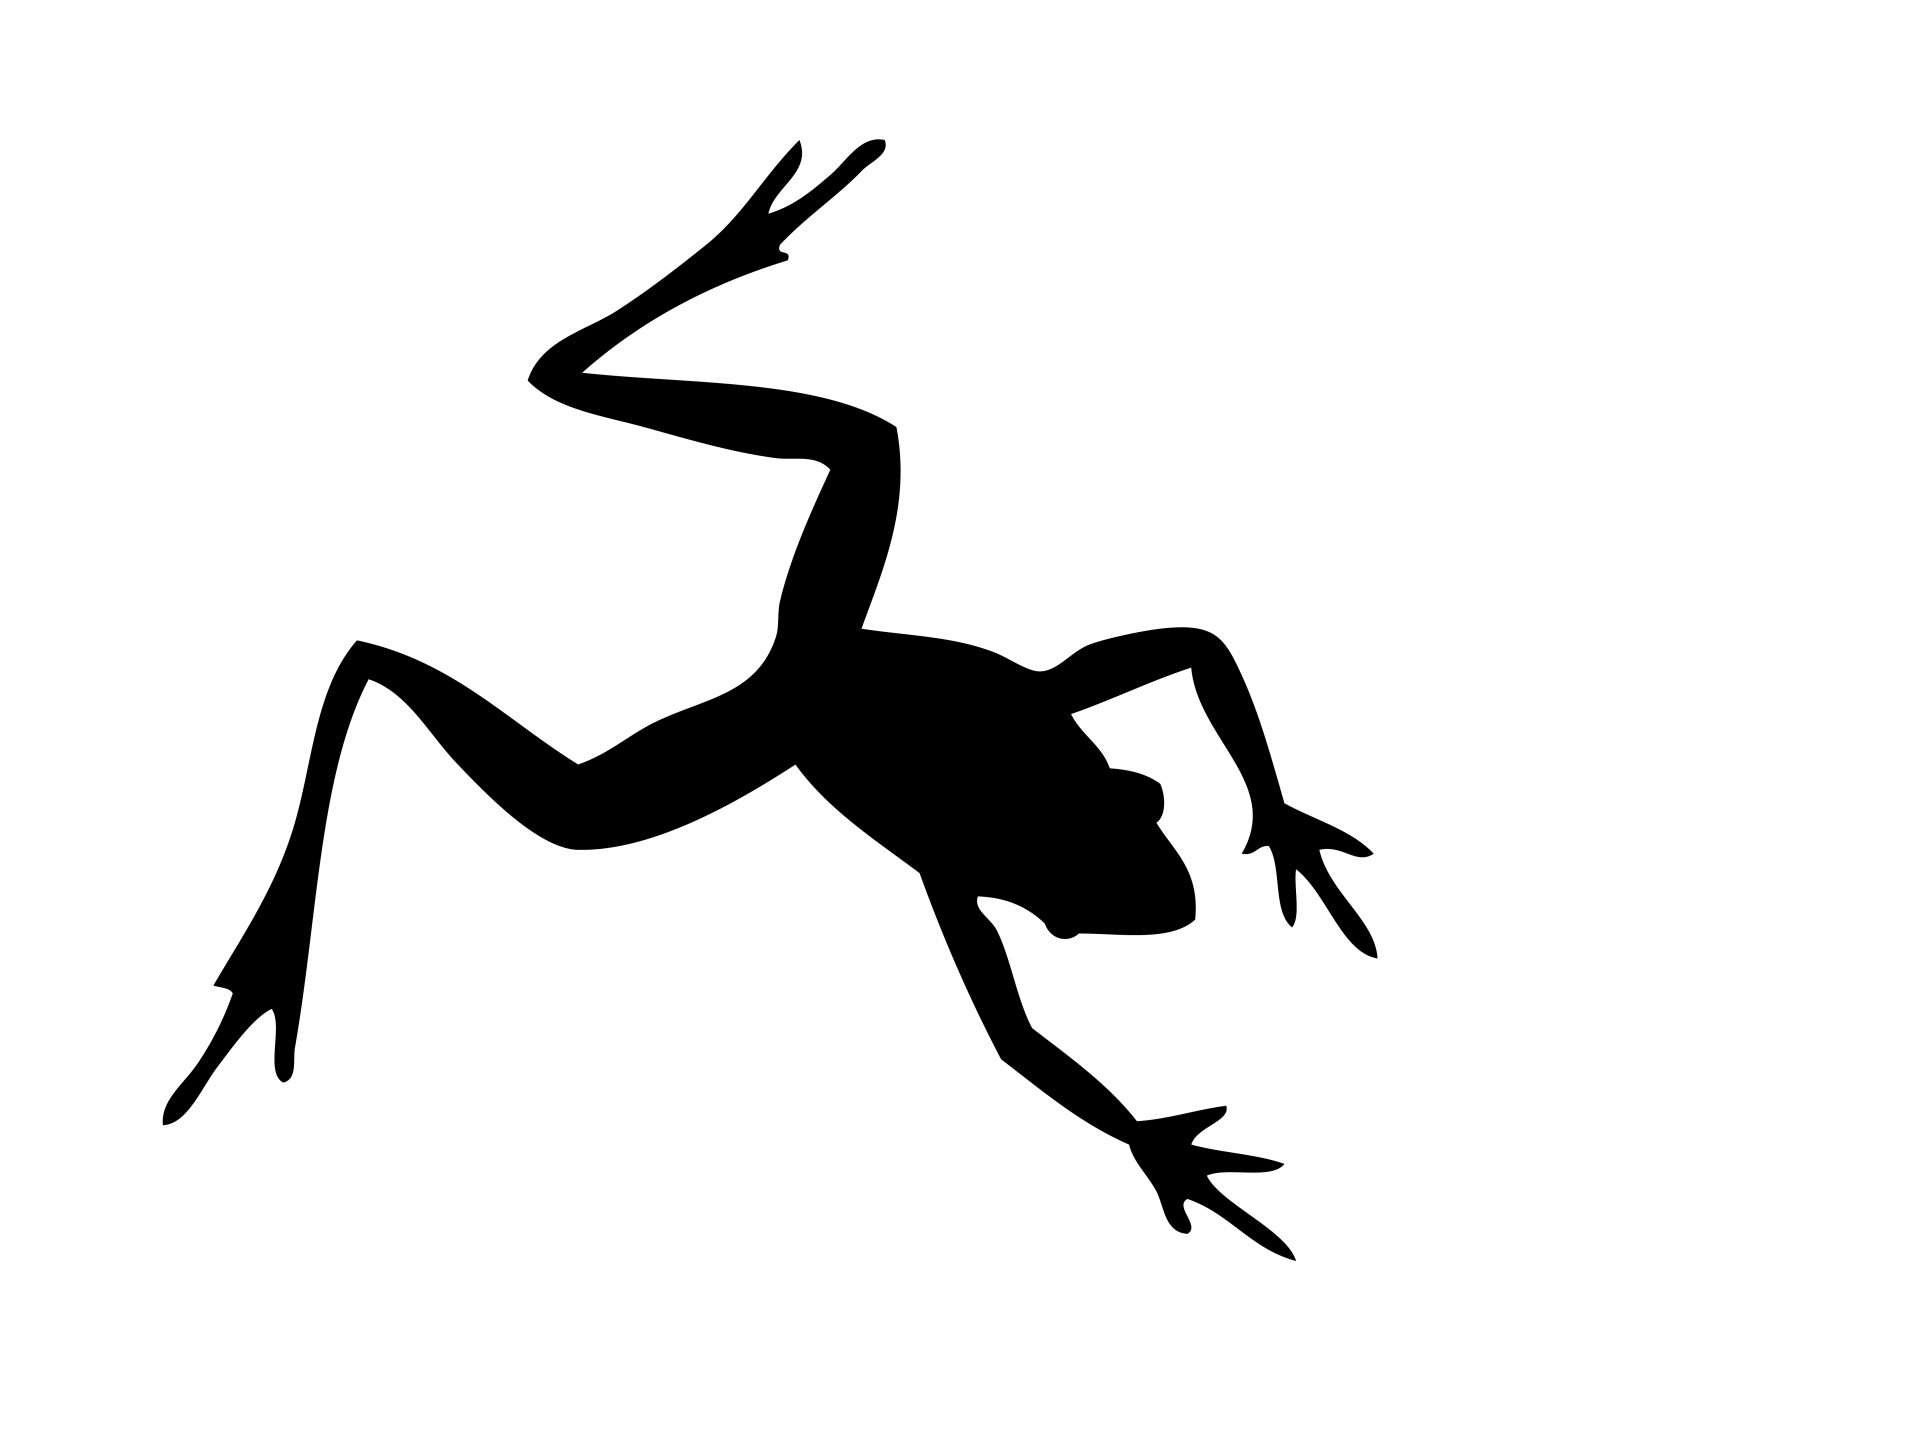 1920x1437 Frog Silhouette Free Stock Photo